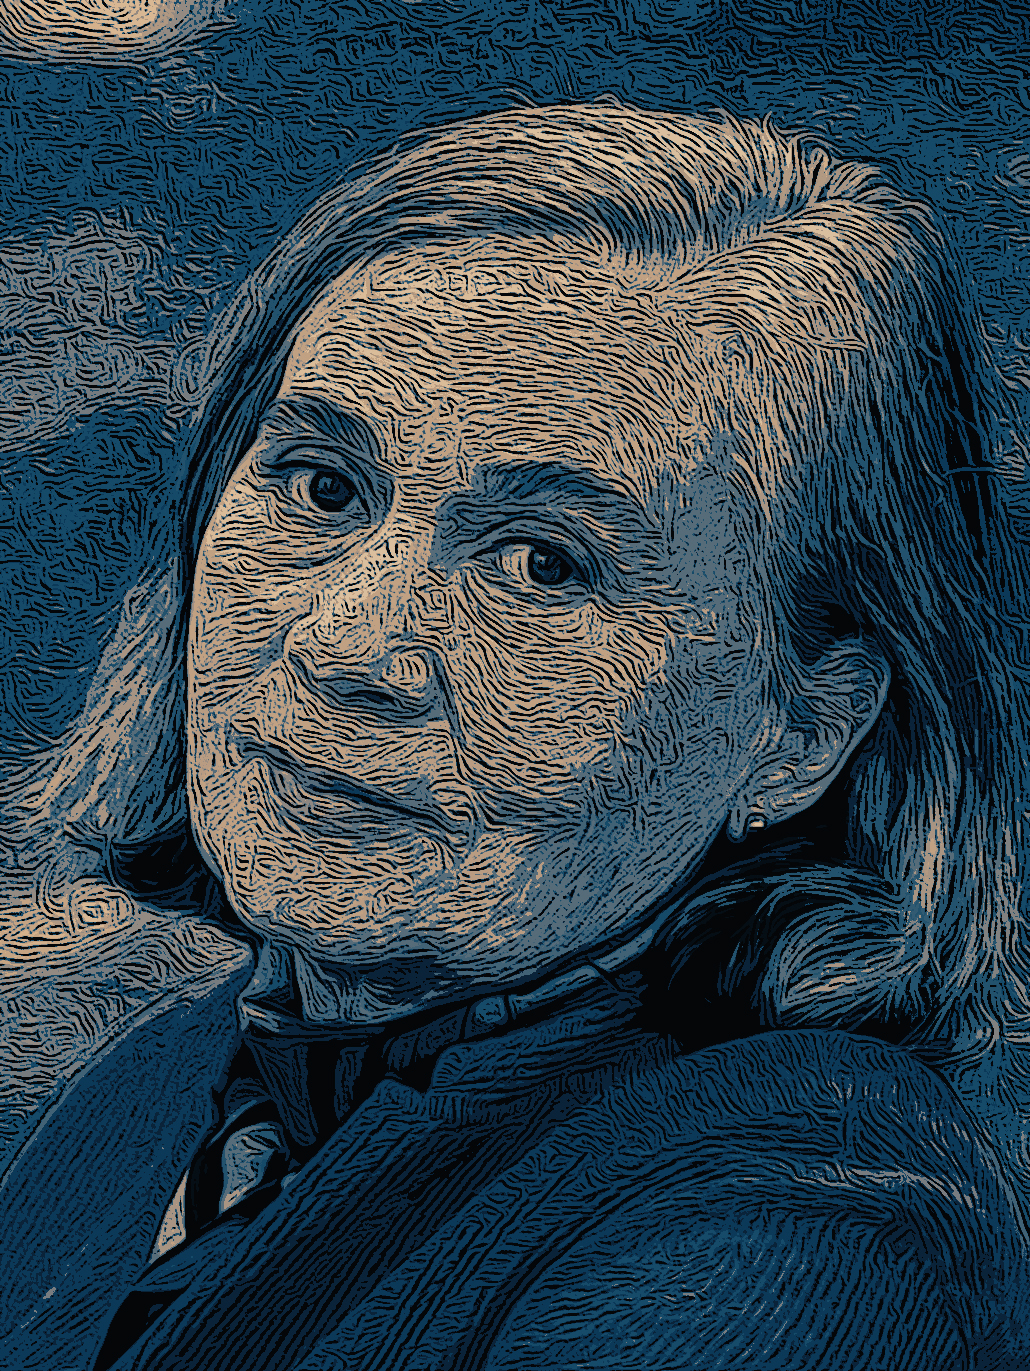 marilynne robinson essay Marilynne robinson's gilead is an epistolary novel, meaning that it is told in the form of letters in the book's first pages, we learn that john ames, the author of the letters, is dying of heart disease.